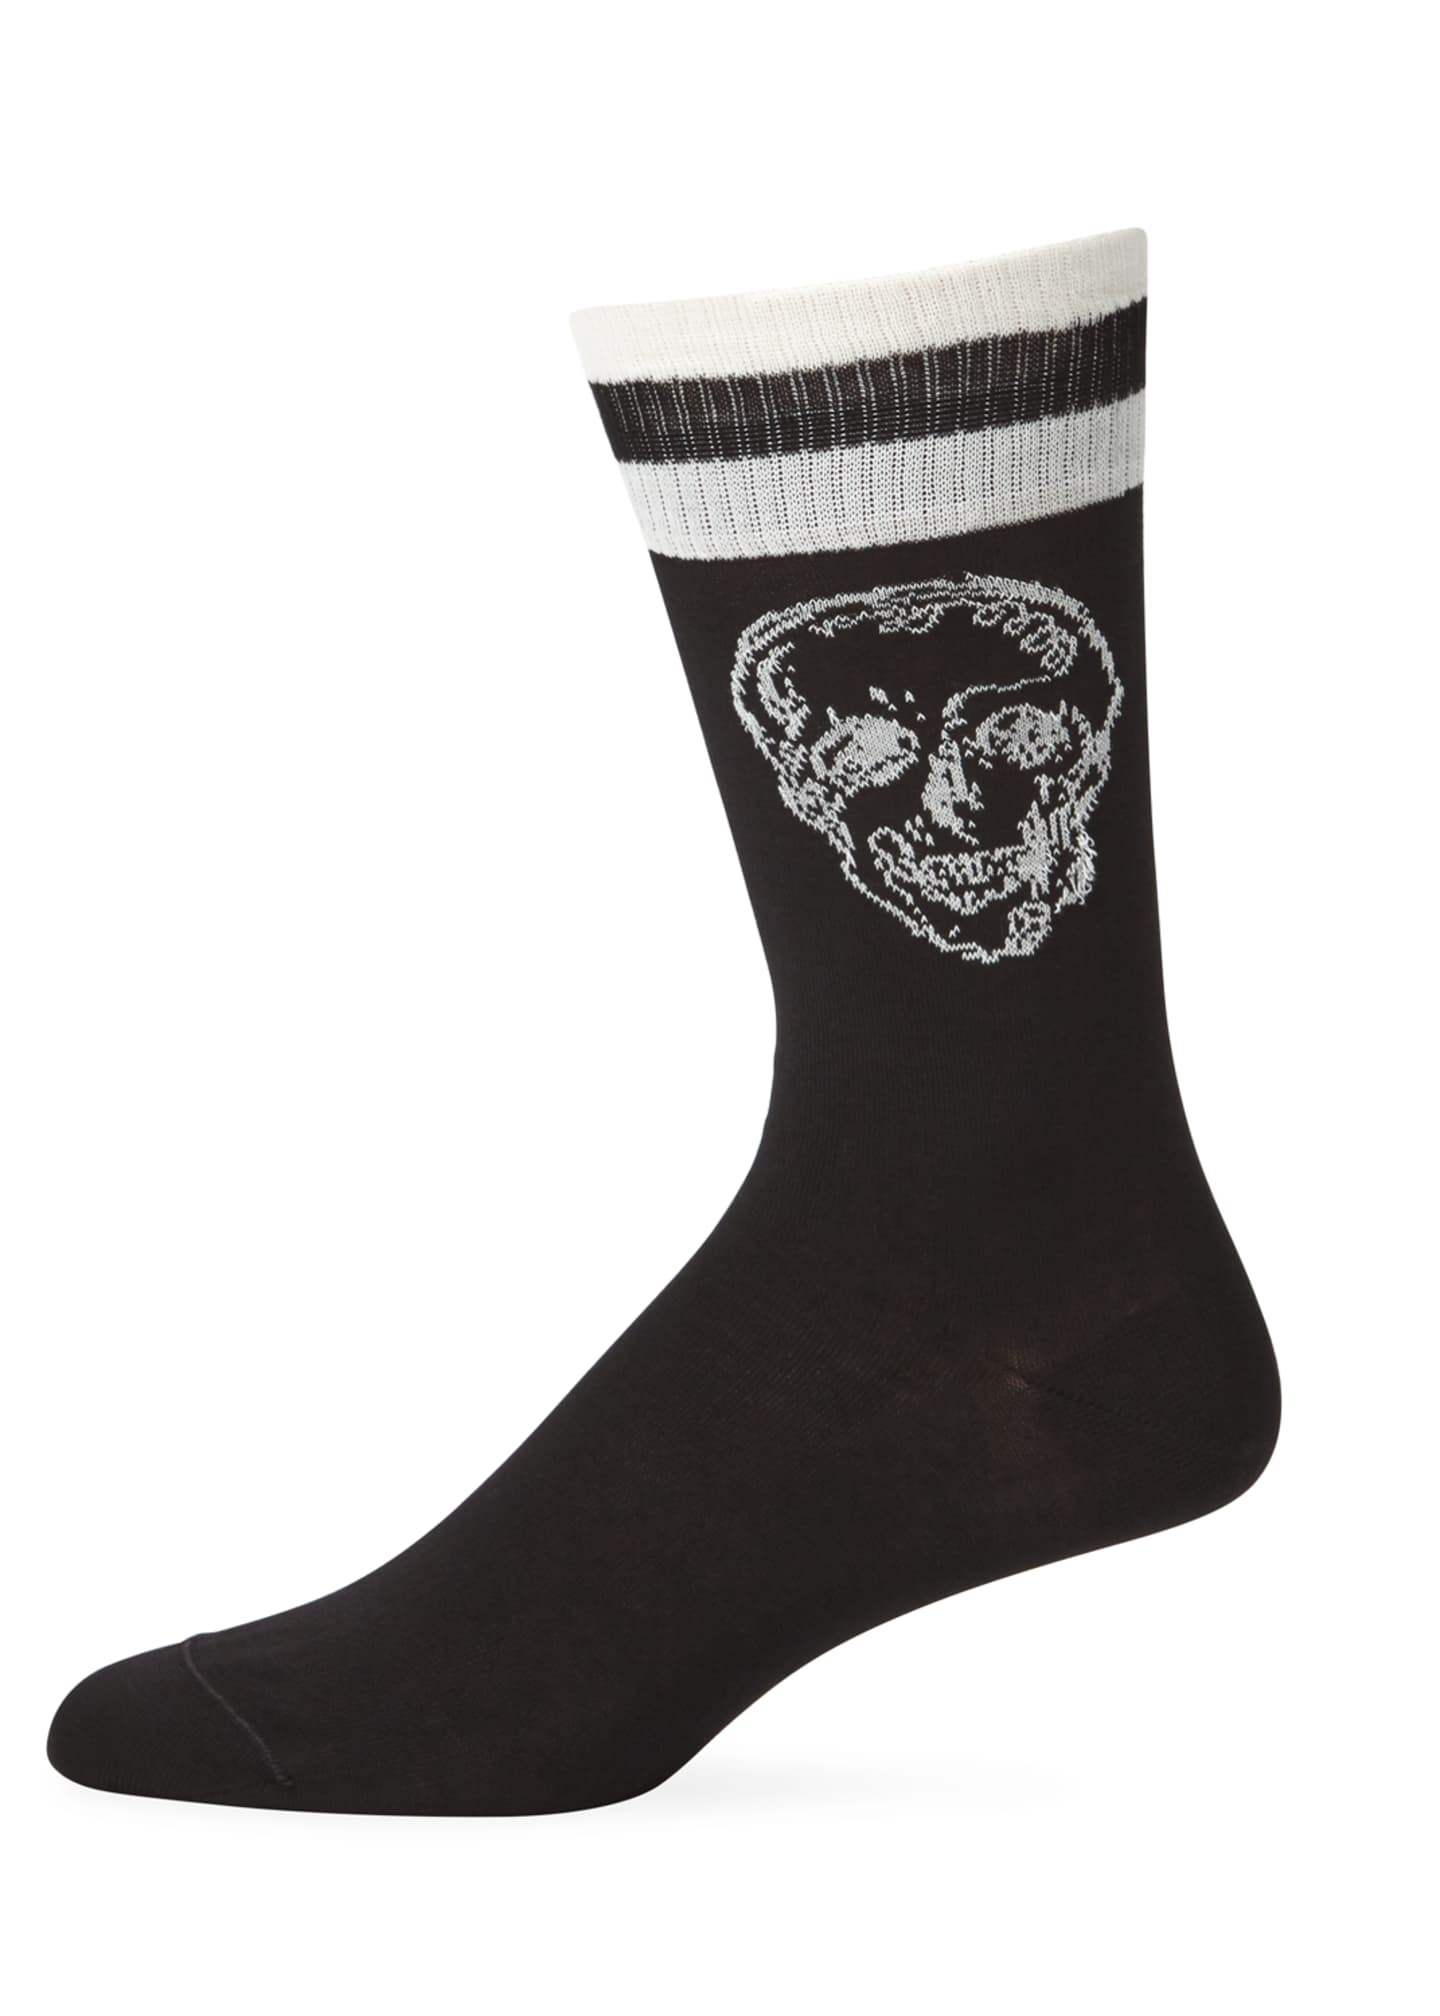 Alexander McQueen Men's Graffiti Skull Socks